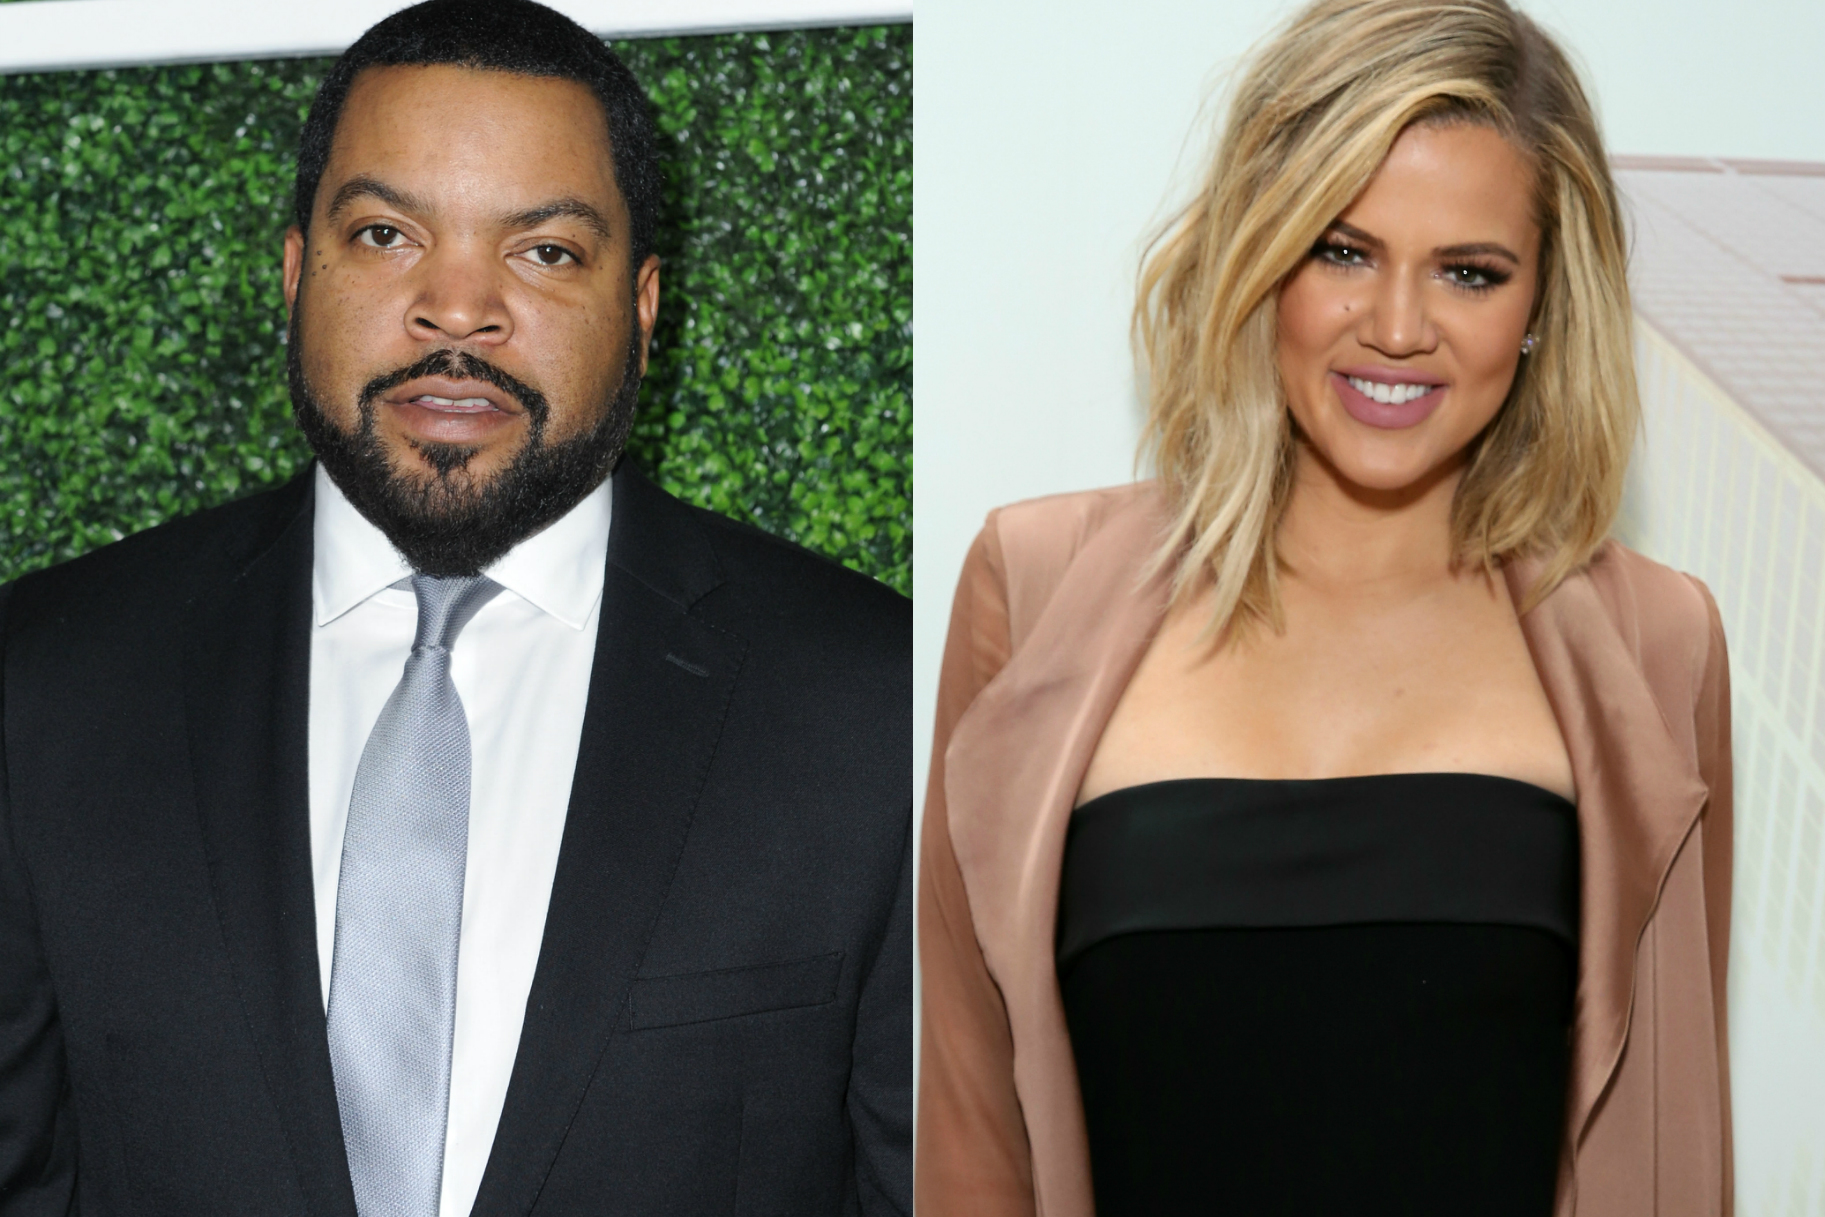 Ice Cube Disroves Of Khloe Kardashian S Thirst For His Son